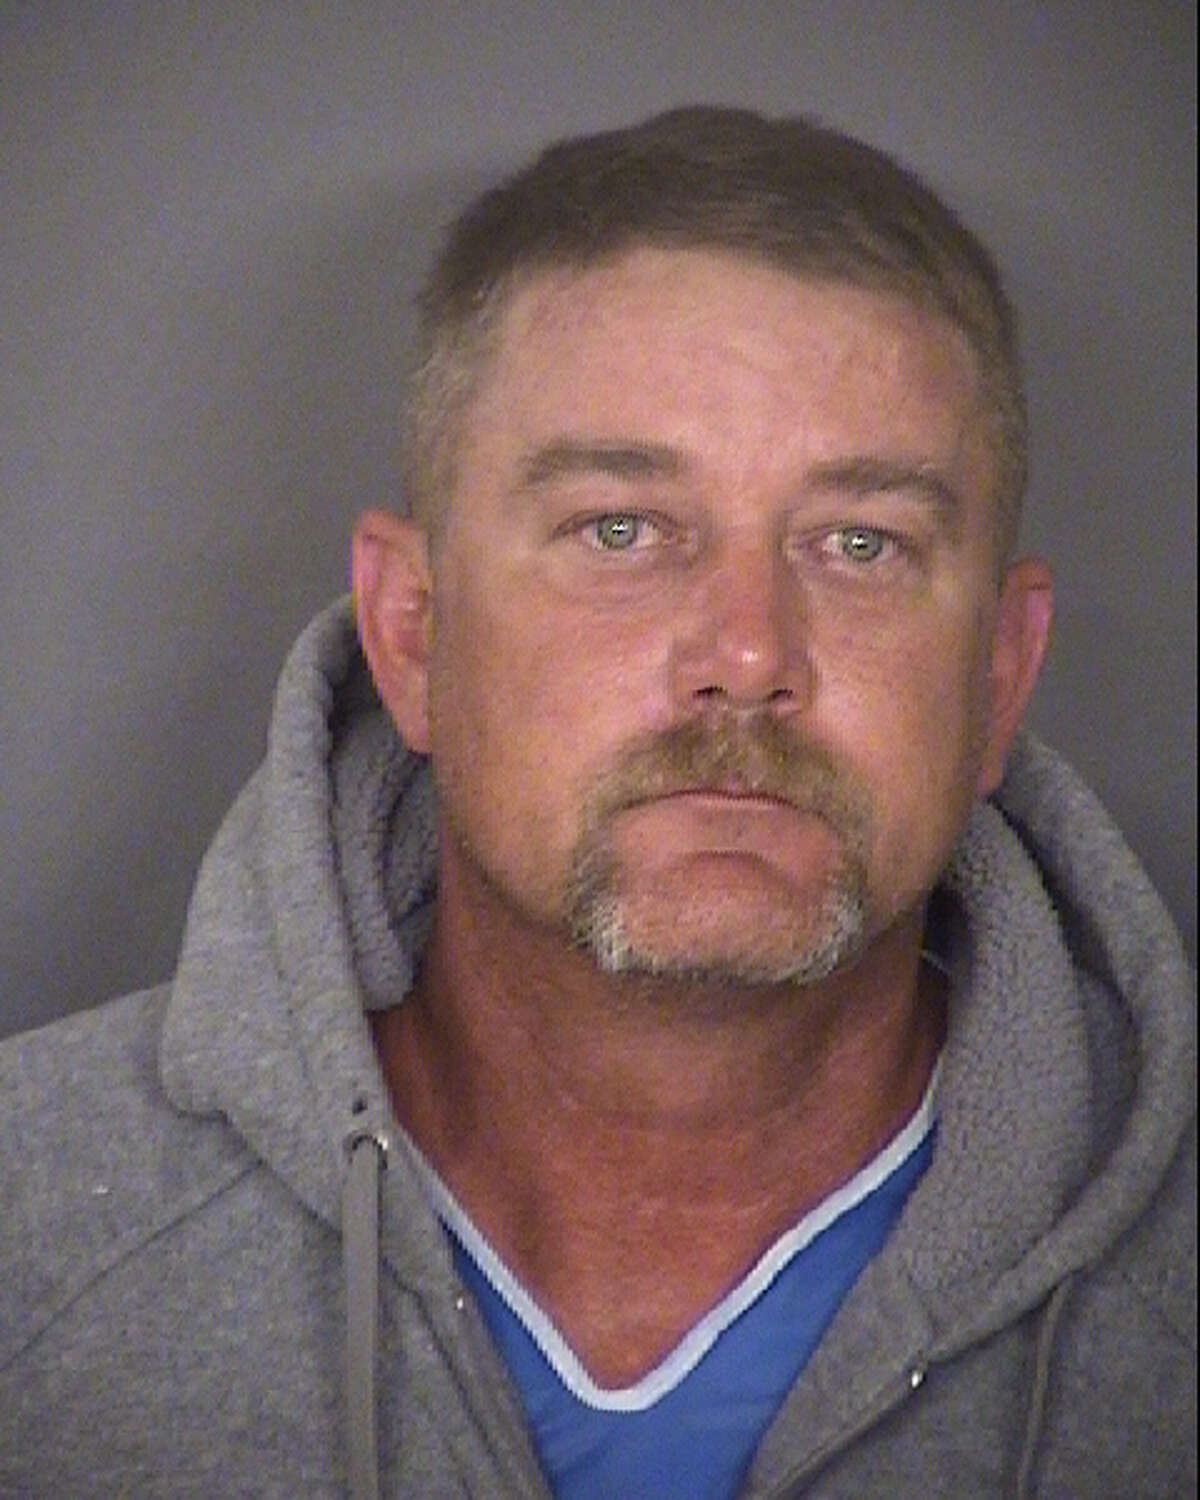 John Duncan was sentenced to 90 years in prison last week following a conviction in the 144th District Court, according to the Bexar County District Attorney's Office.